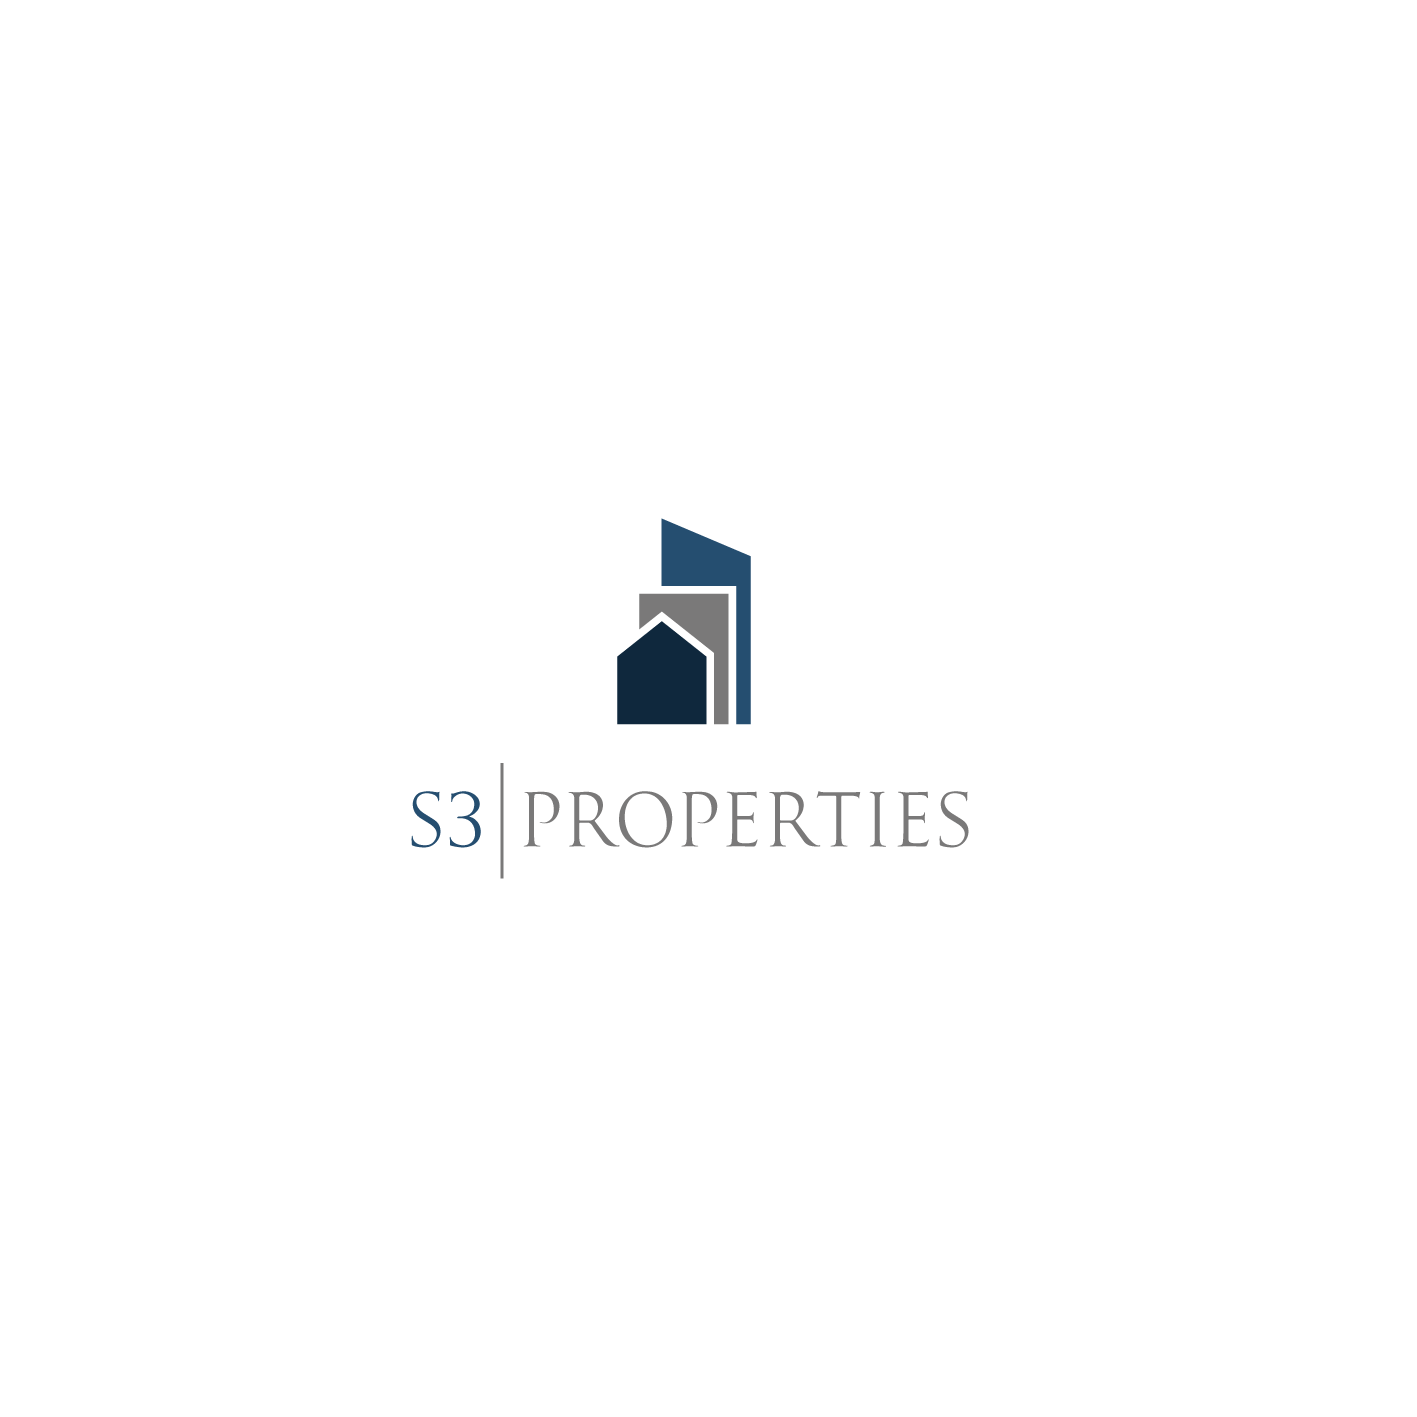 Create a logo for the company name: S3 Properties